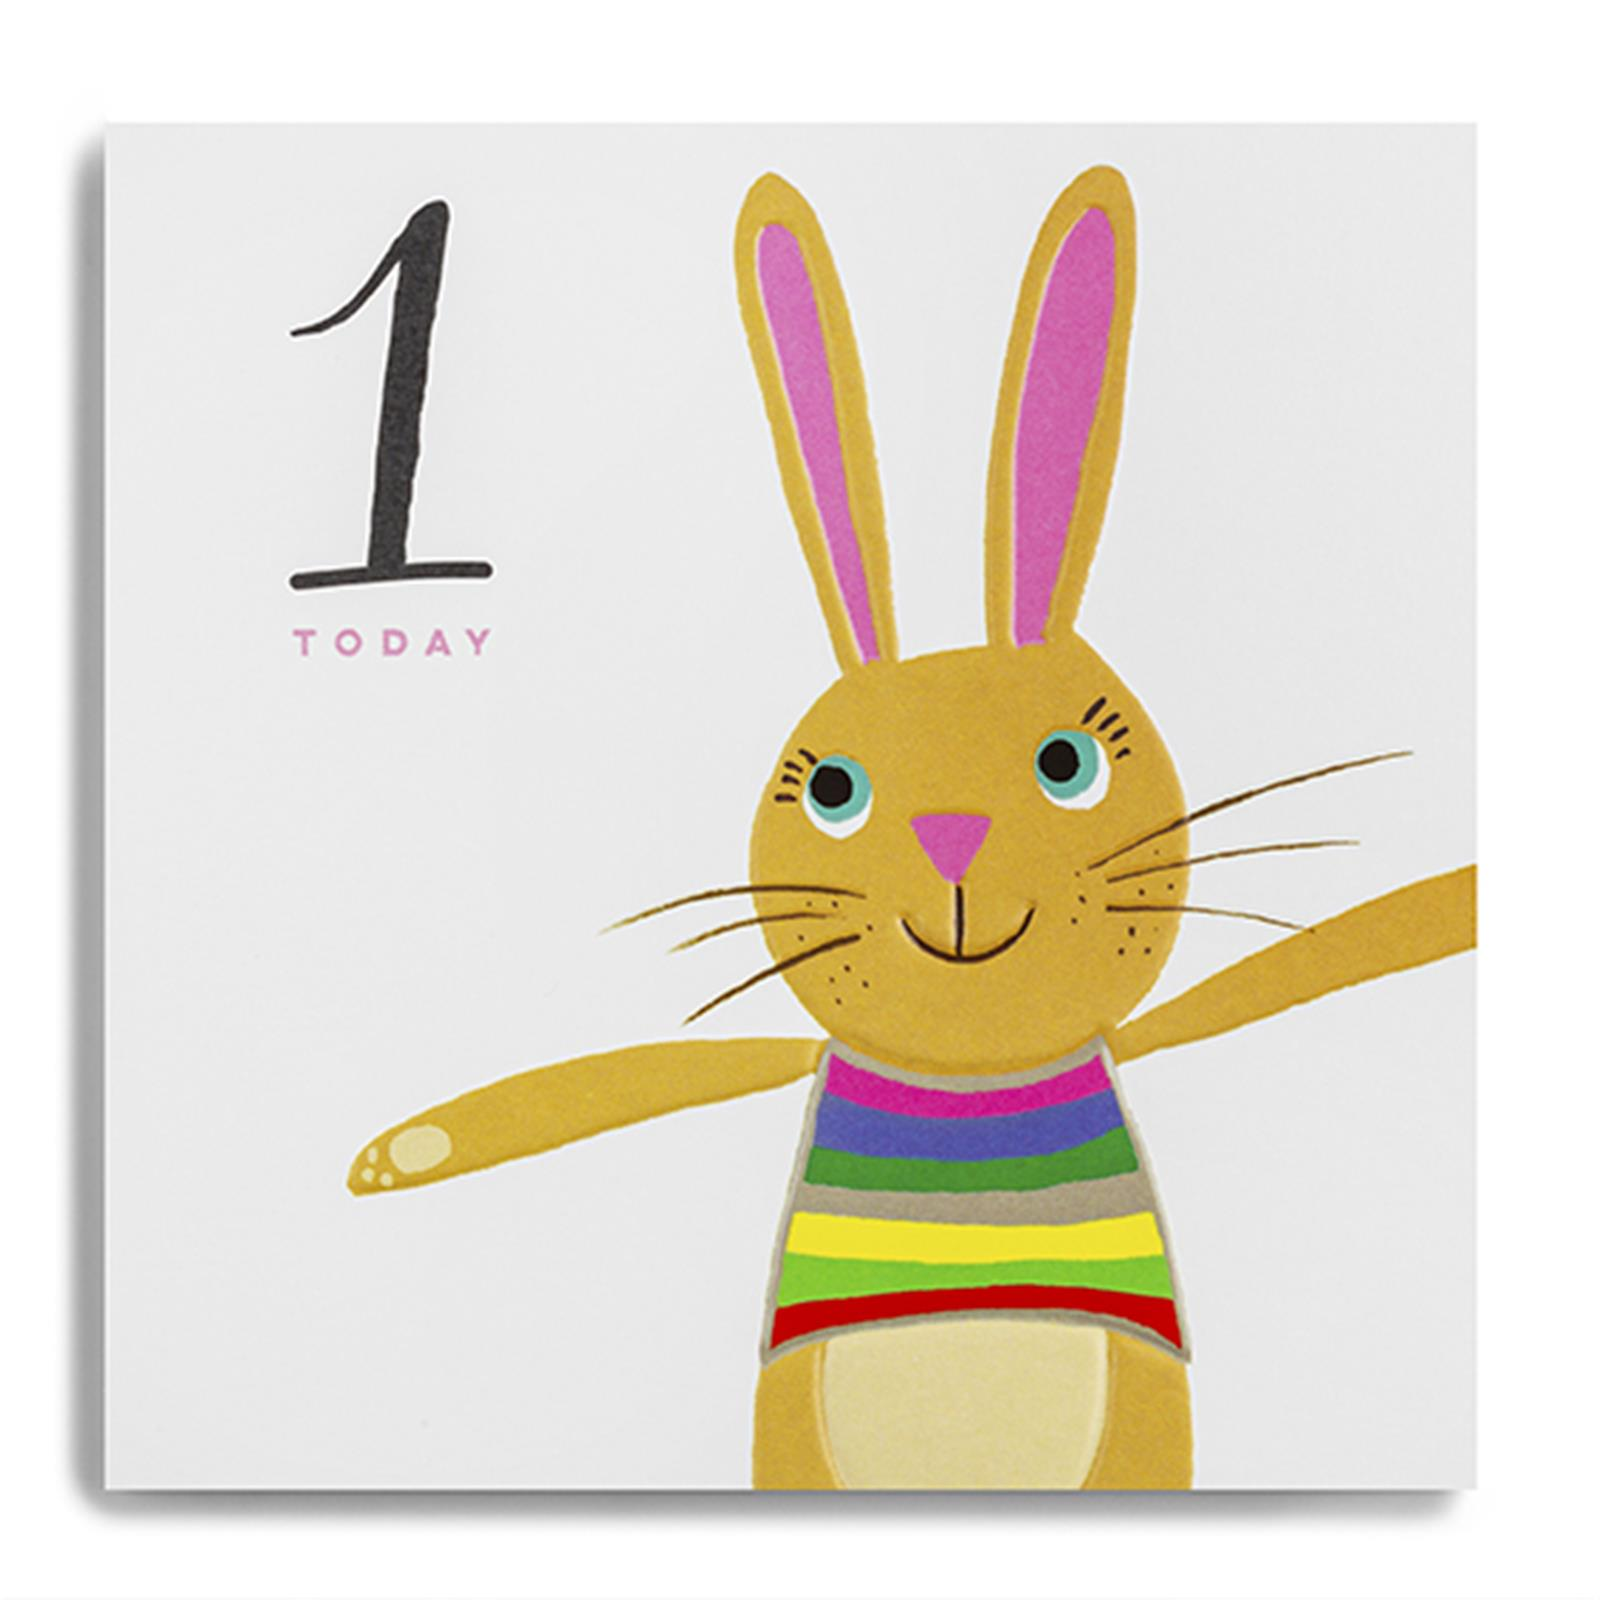 buy 1st birthday card online with bunny rabbit for little boy baby girl toddler first birthday cards age one cards with animals bunnies bunny rabbits from karenza paperie